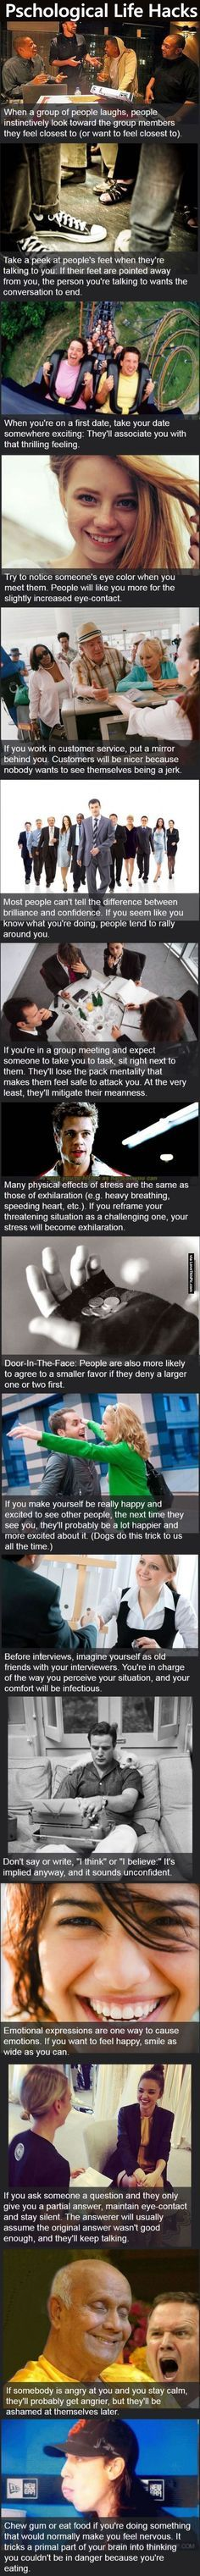 Psychological Life Hacks Pictures, Photos, and Images for Facebook, Tumblr, Pinterest, and Twitter